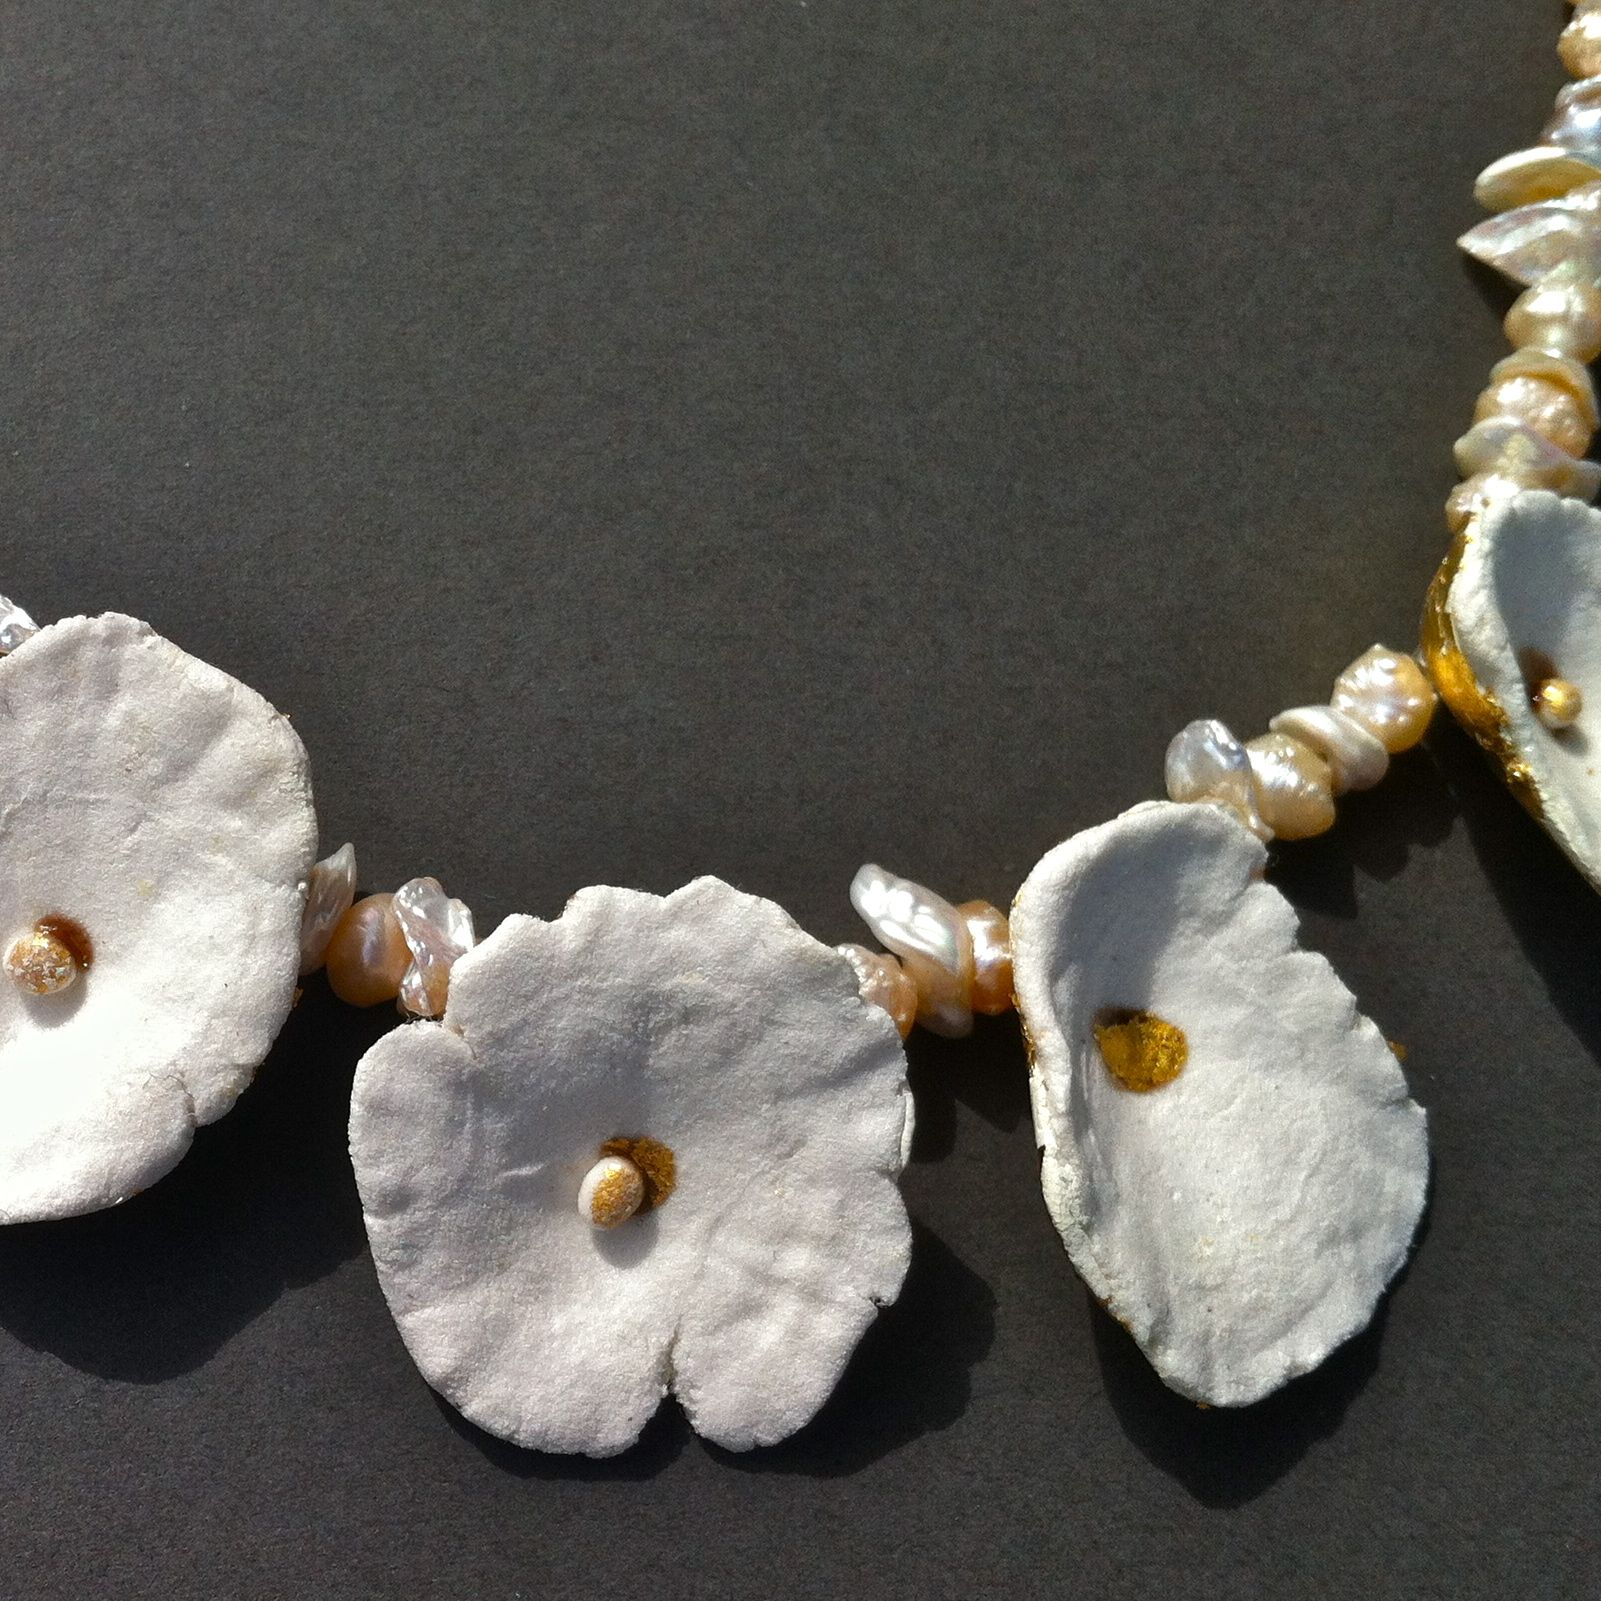 Necklace Papier Mache And Resin Gold Leaf And Pearls Hilary Bravo Collane Gioielli Tessili